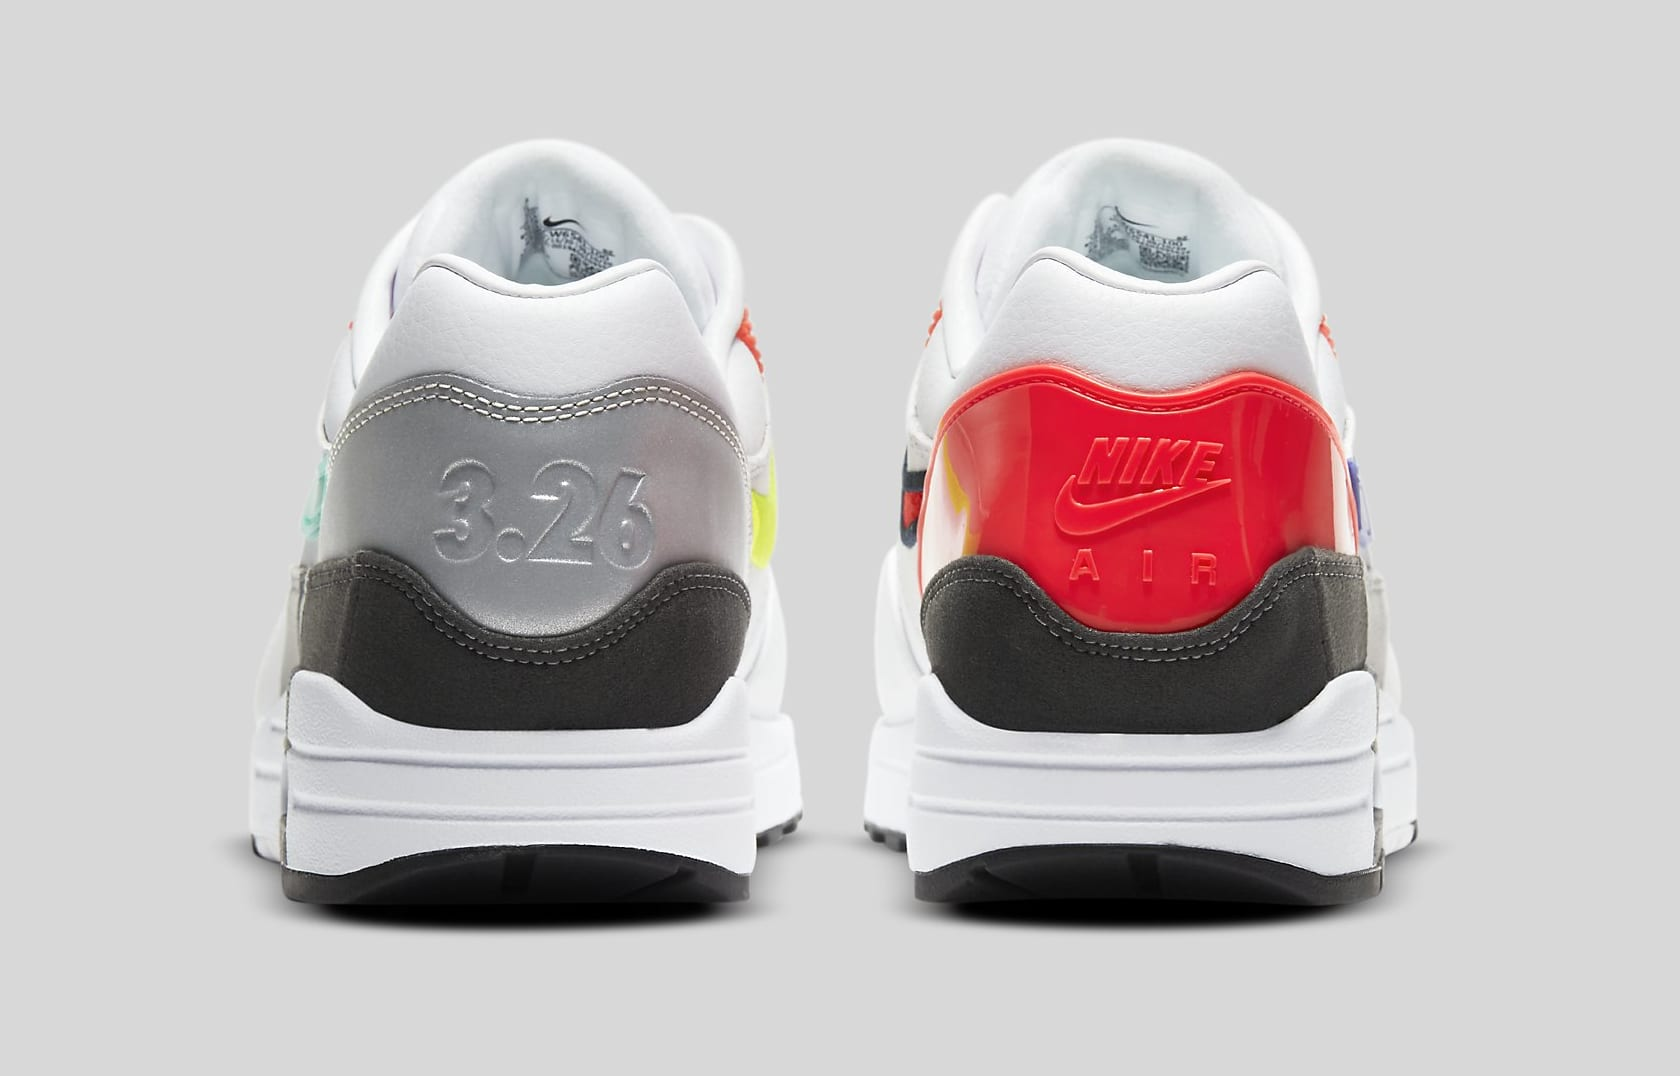 Nike Air Max 1 'Evolutions of Icons' CW6541-100 Heel